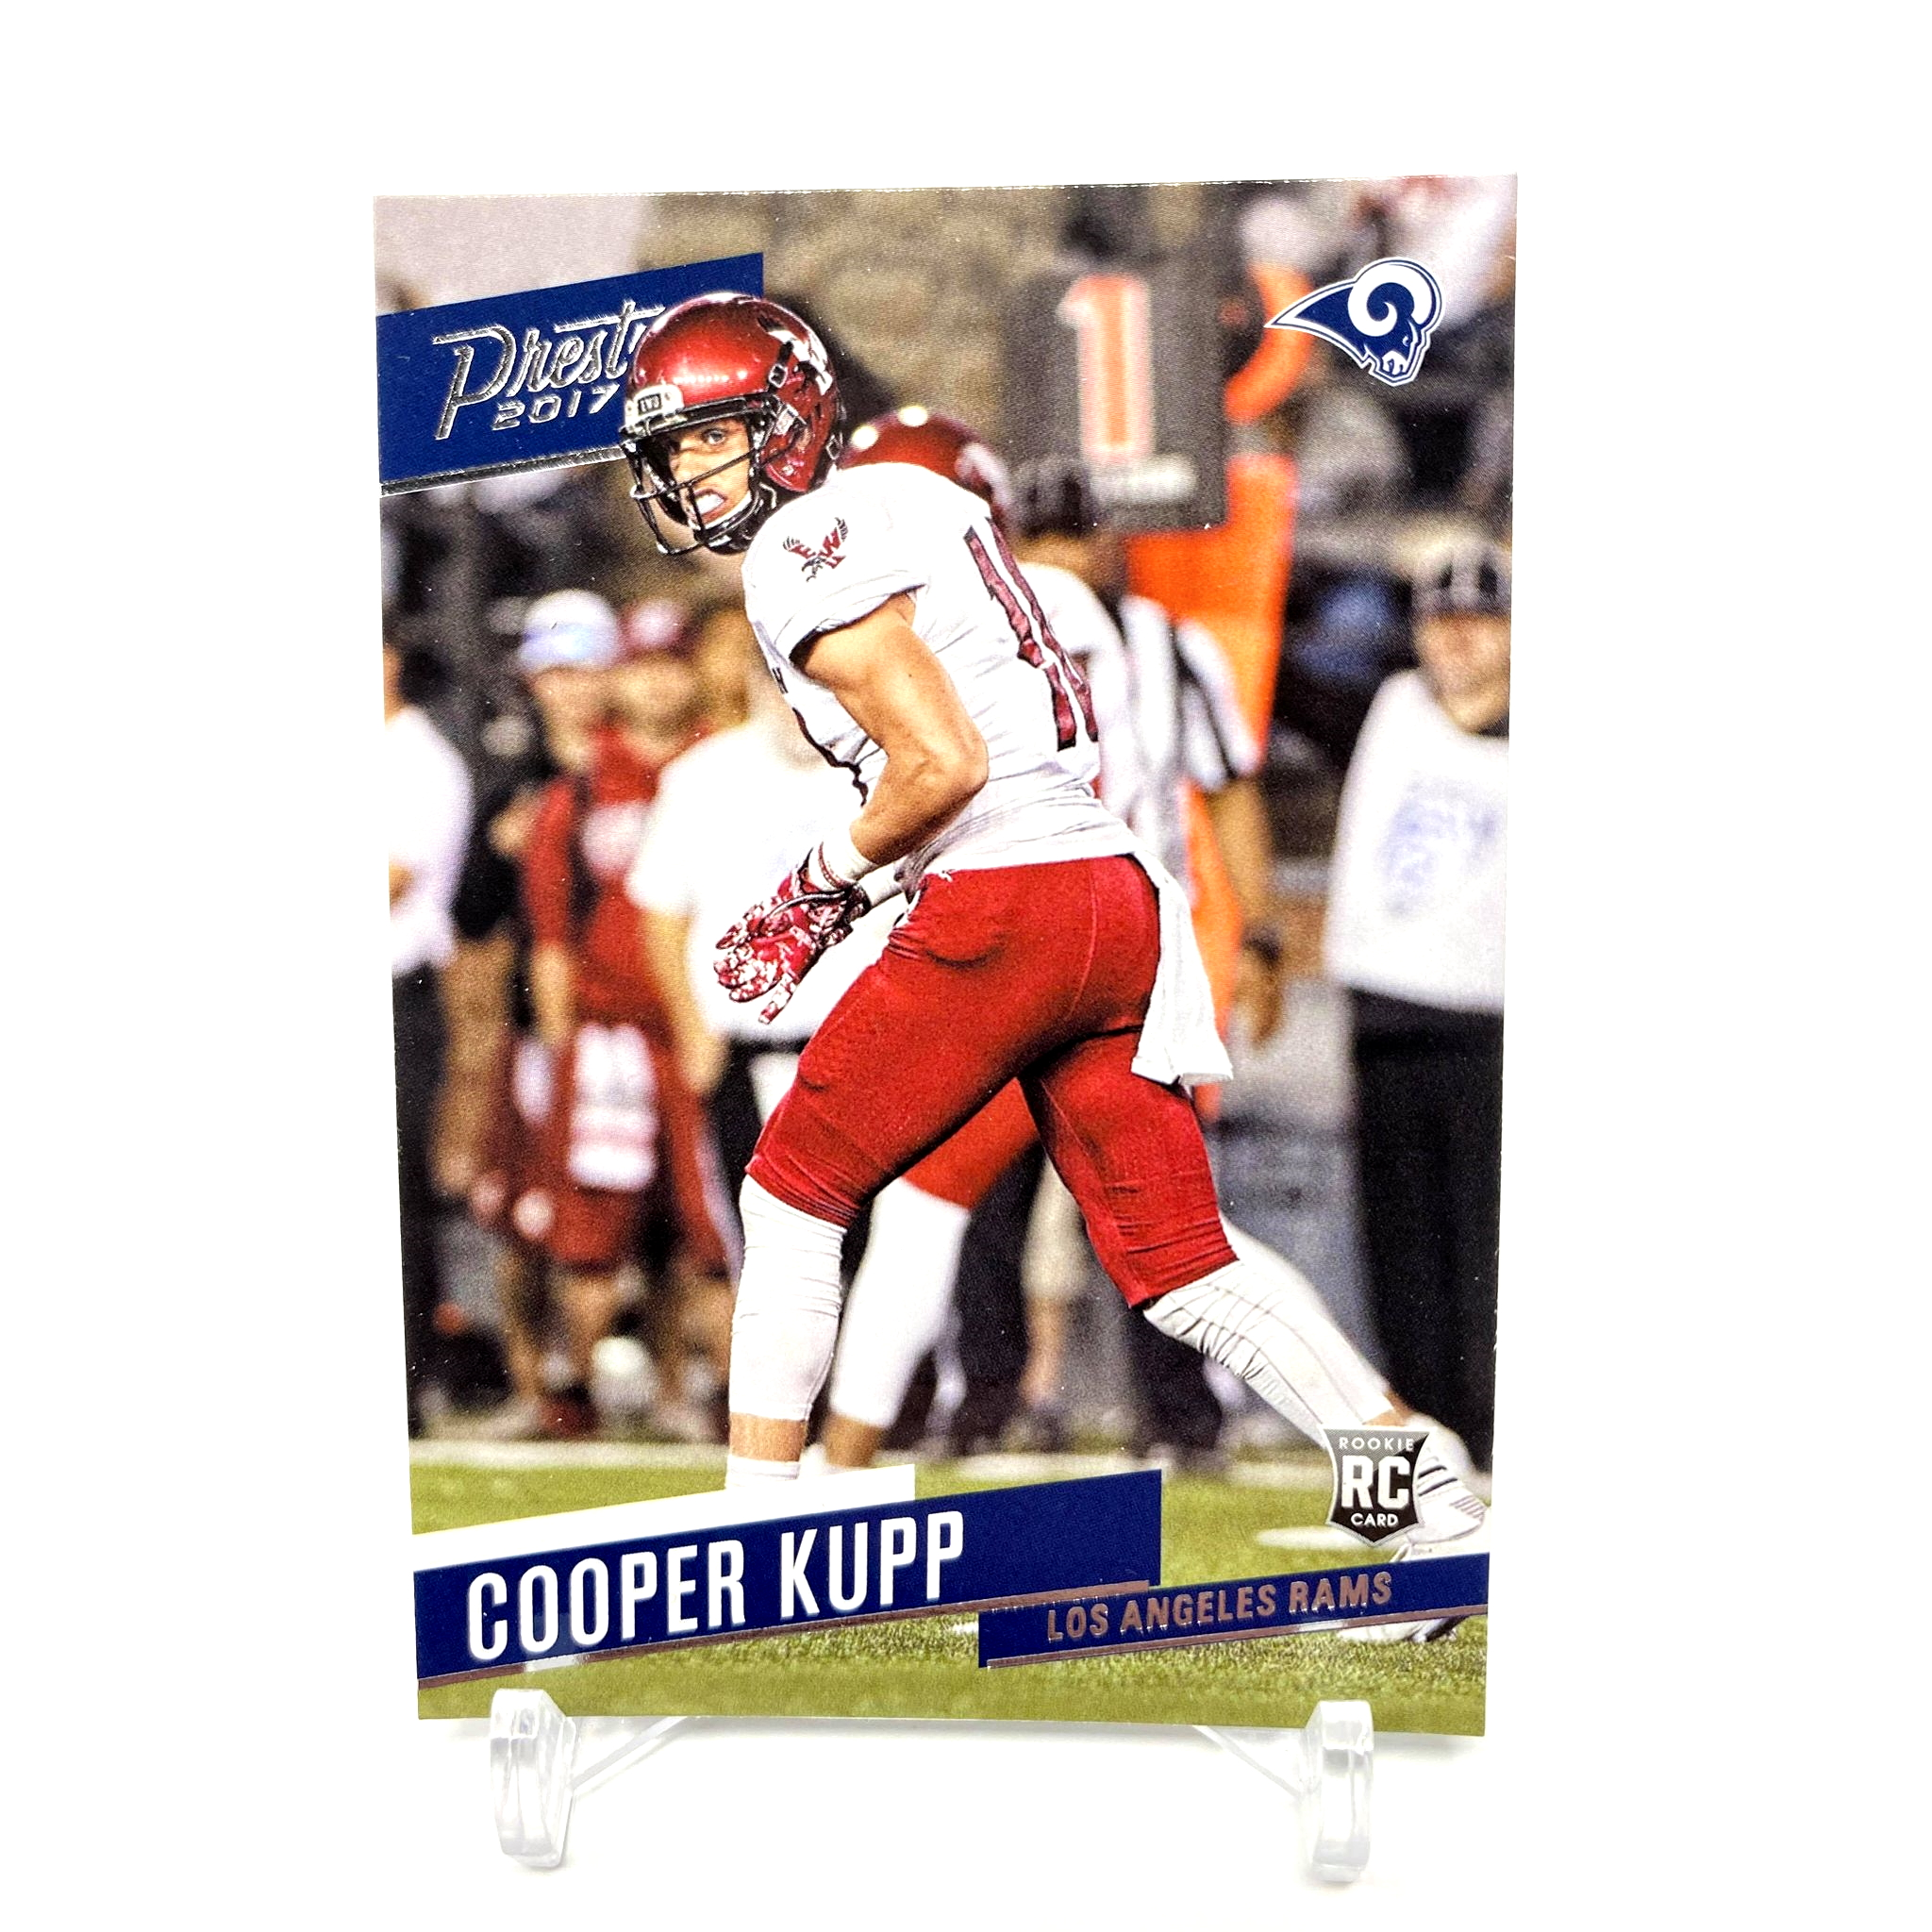 2017 Panini Prestige Cooper Kupp Rookie Card Los Angeles Rams